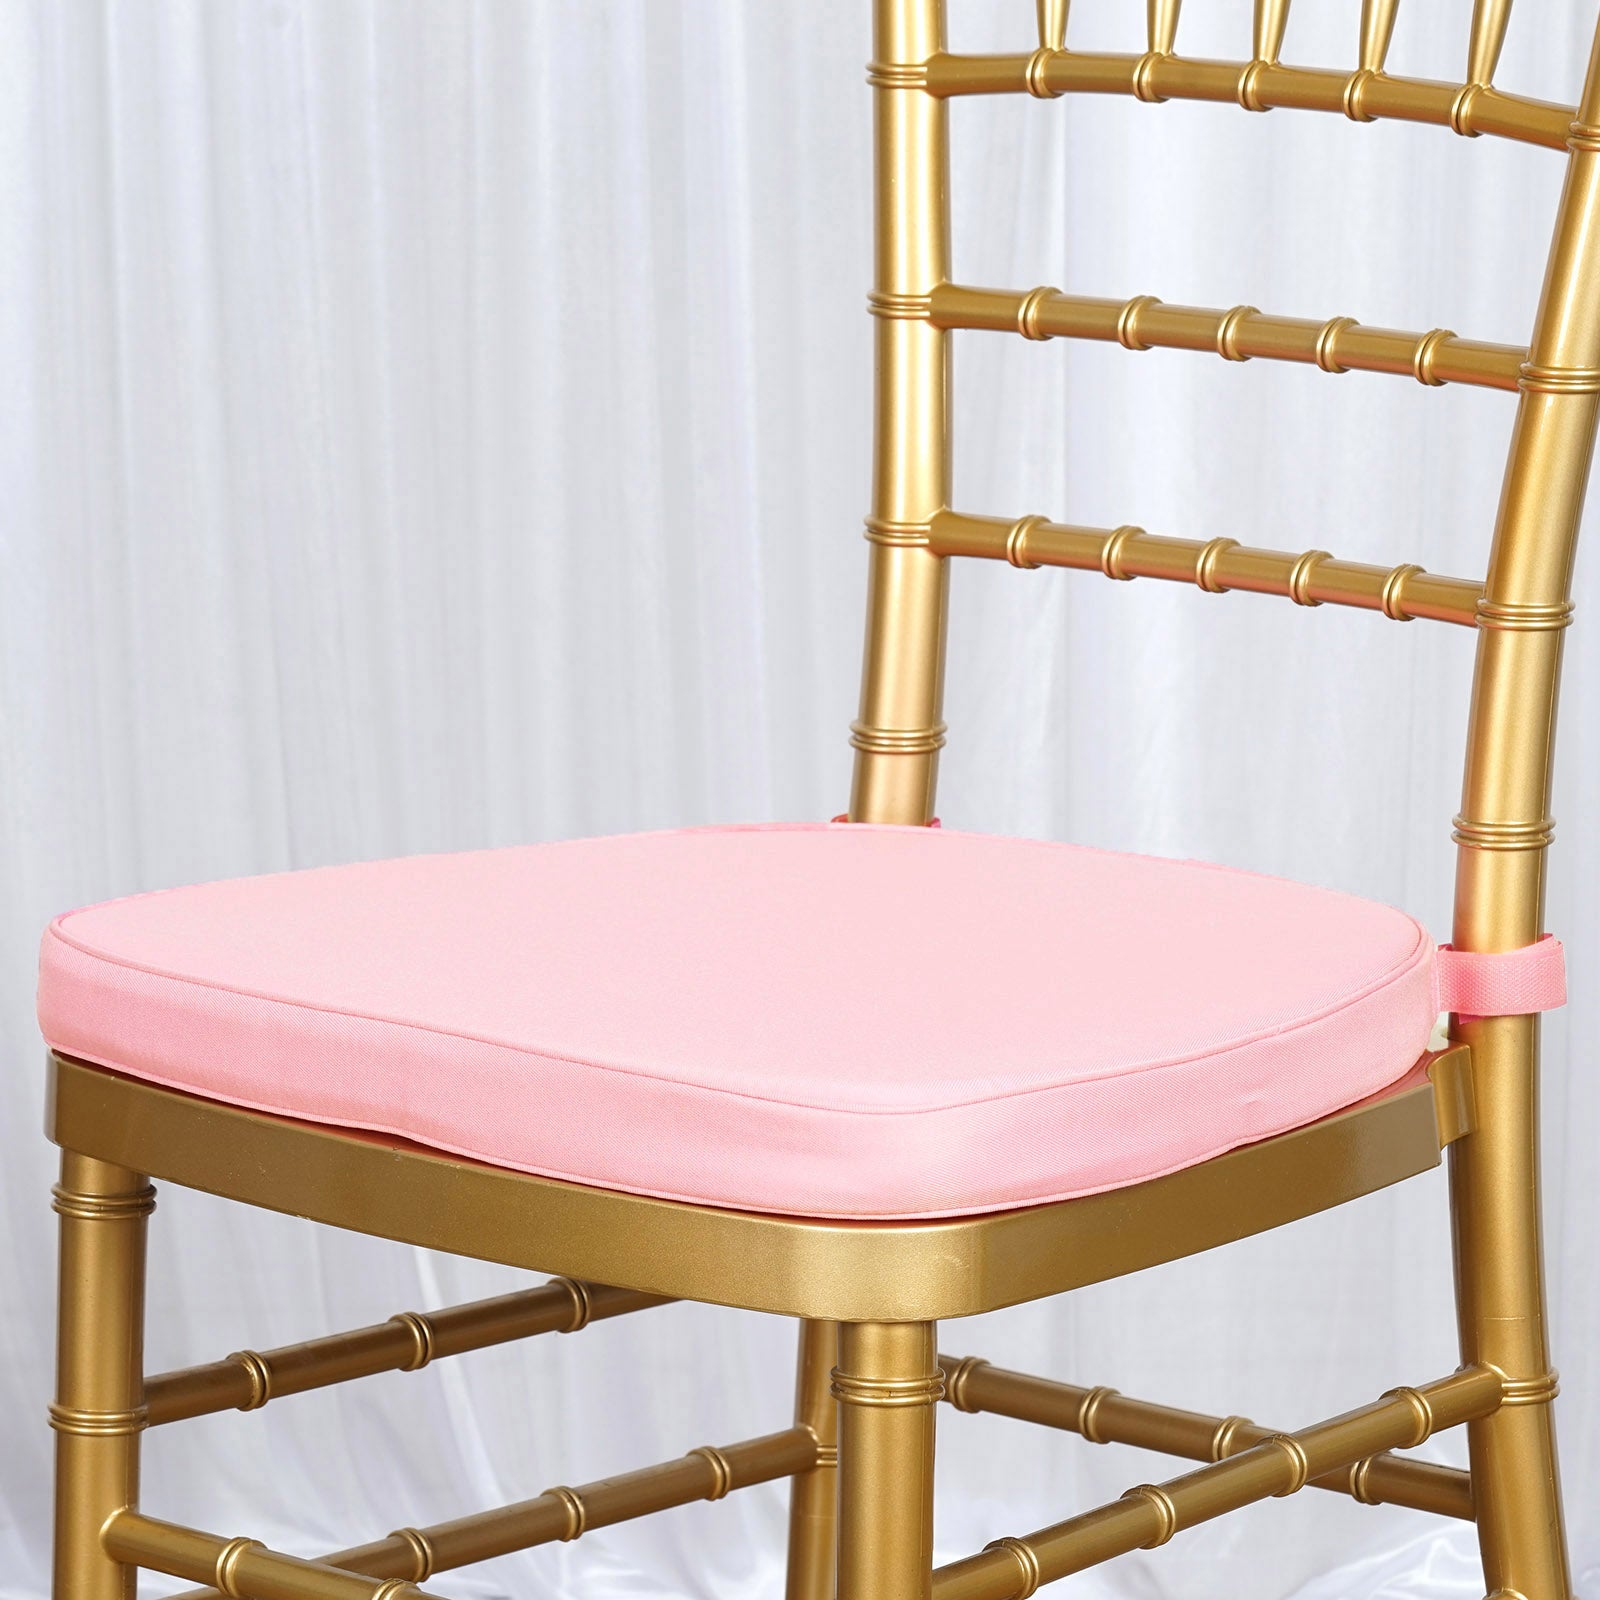 Chair Pad Seat Padded Blush Rose Gold Sponge Cushion With Poly